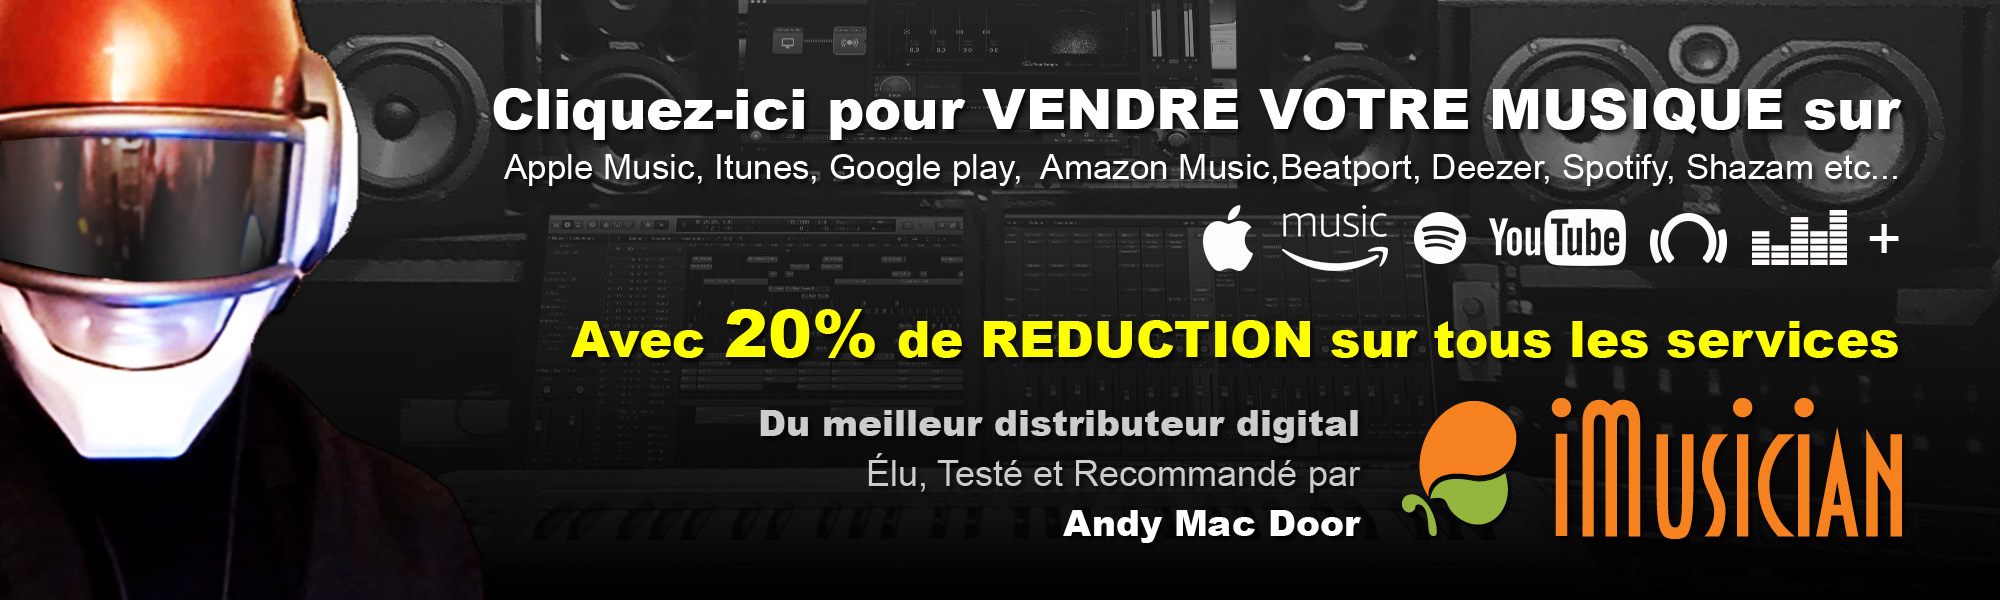 Avec Andy Mac Door, bénéficiez d'une remise de 20% sur tous les services d'Imusician.com